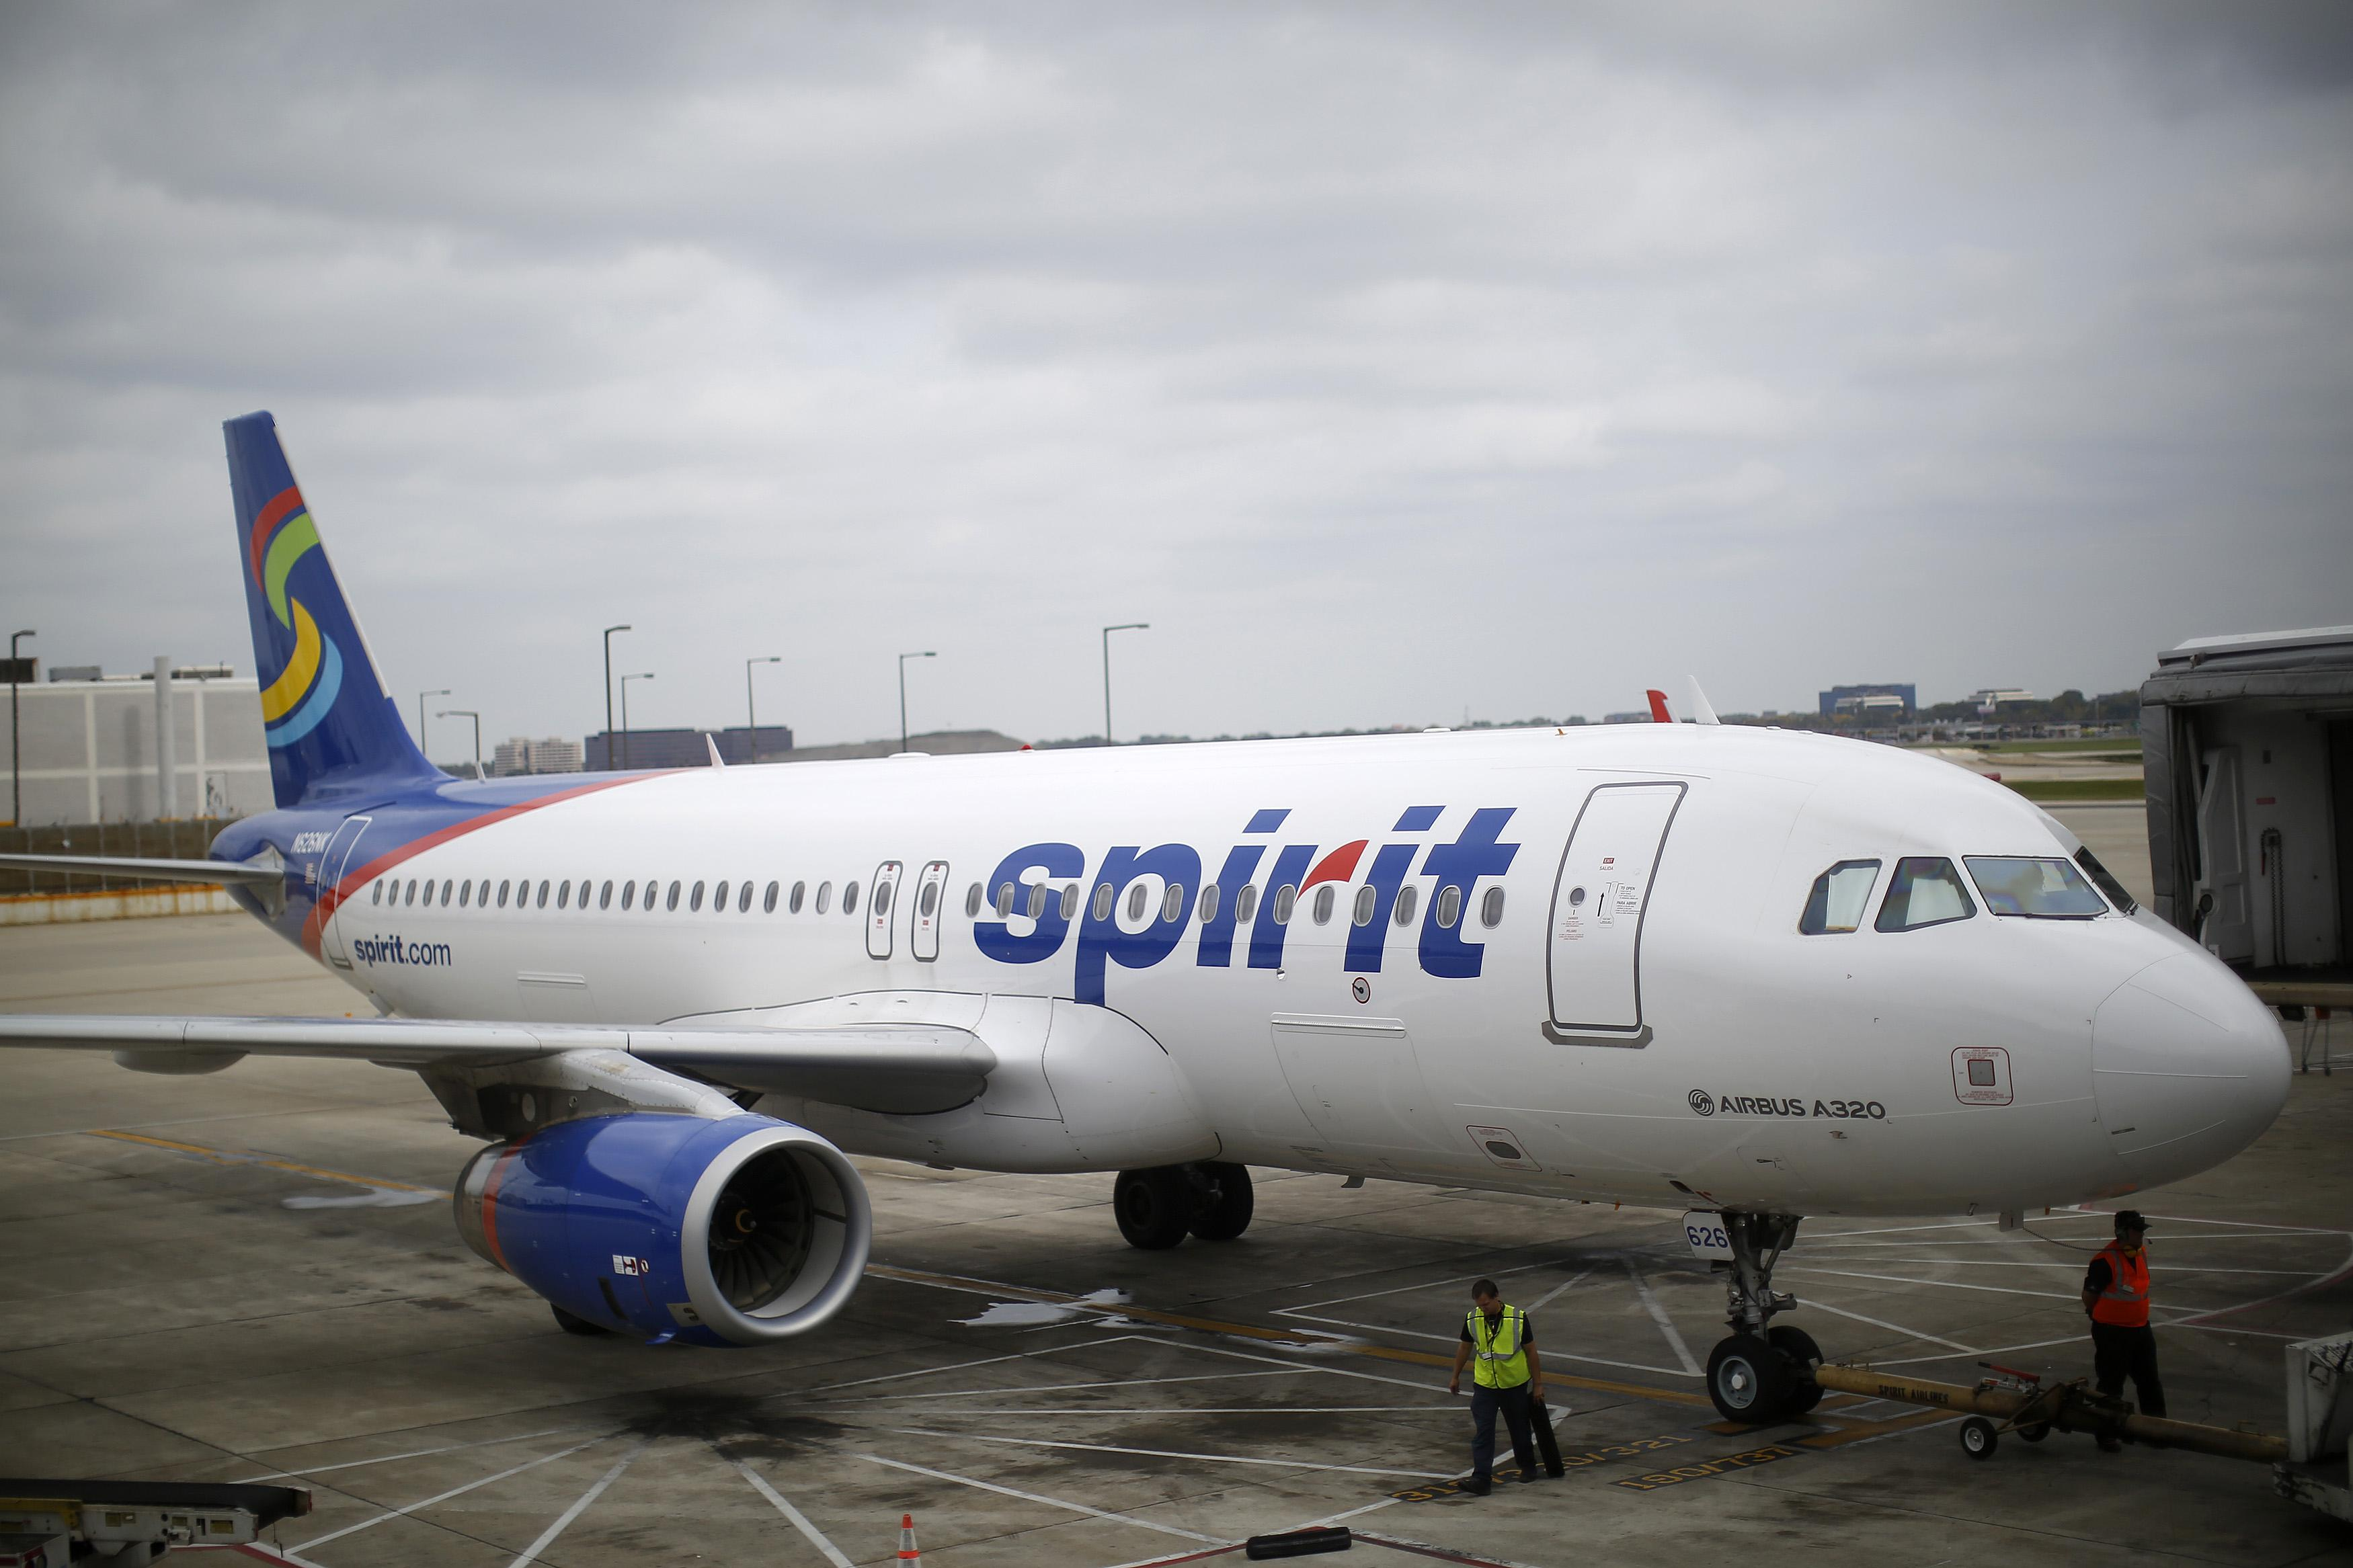 'Drunk' woman twerks, flashes passengers in Spirit Airlines meltdown